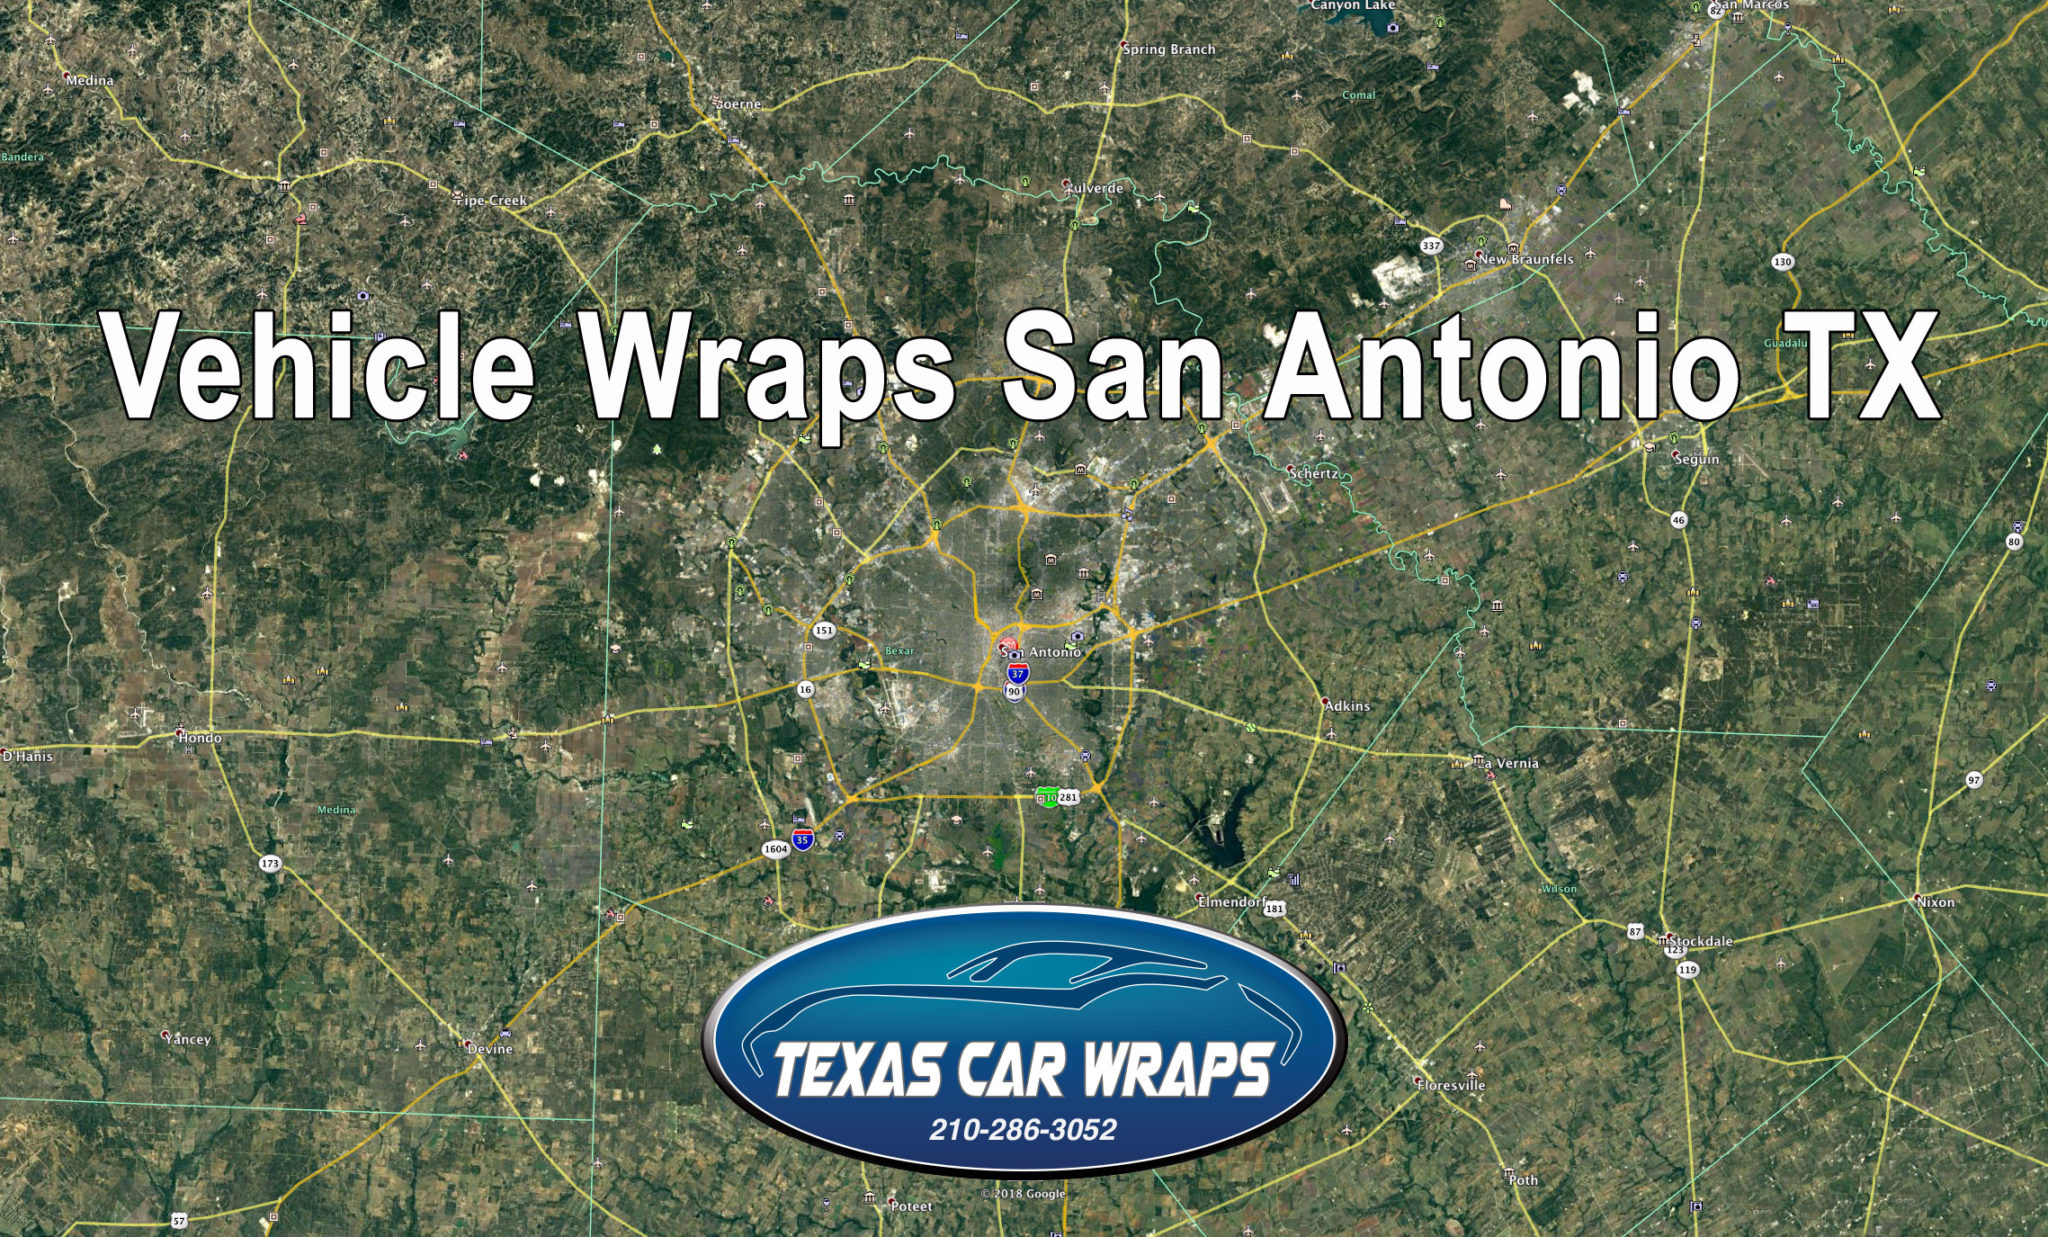 Vehicle Wraps San Antonio | Texas Car Wraps | Car Wraps San Antonio | Trailer Wraps San Antonio | Van Wraps San Antonio | Car Graphics San Antonio | Vehicle Wraps TX